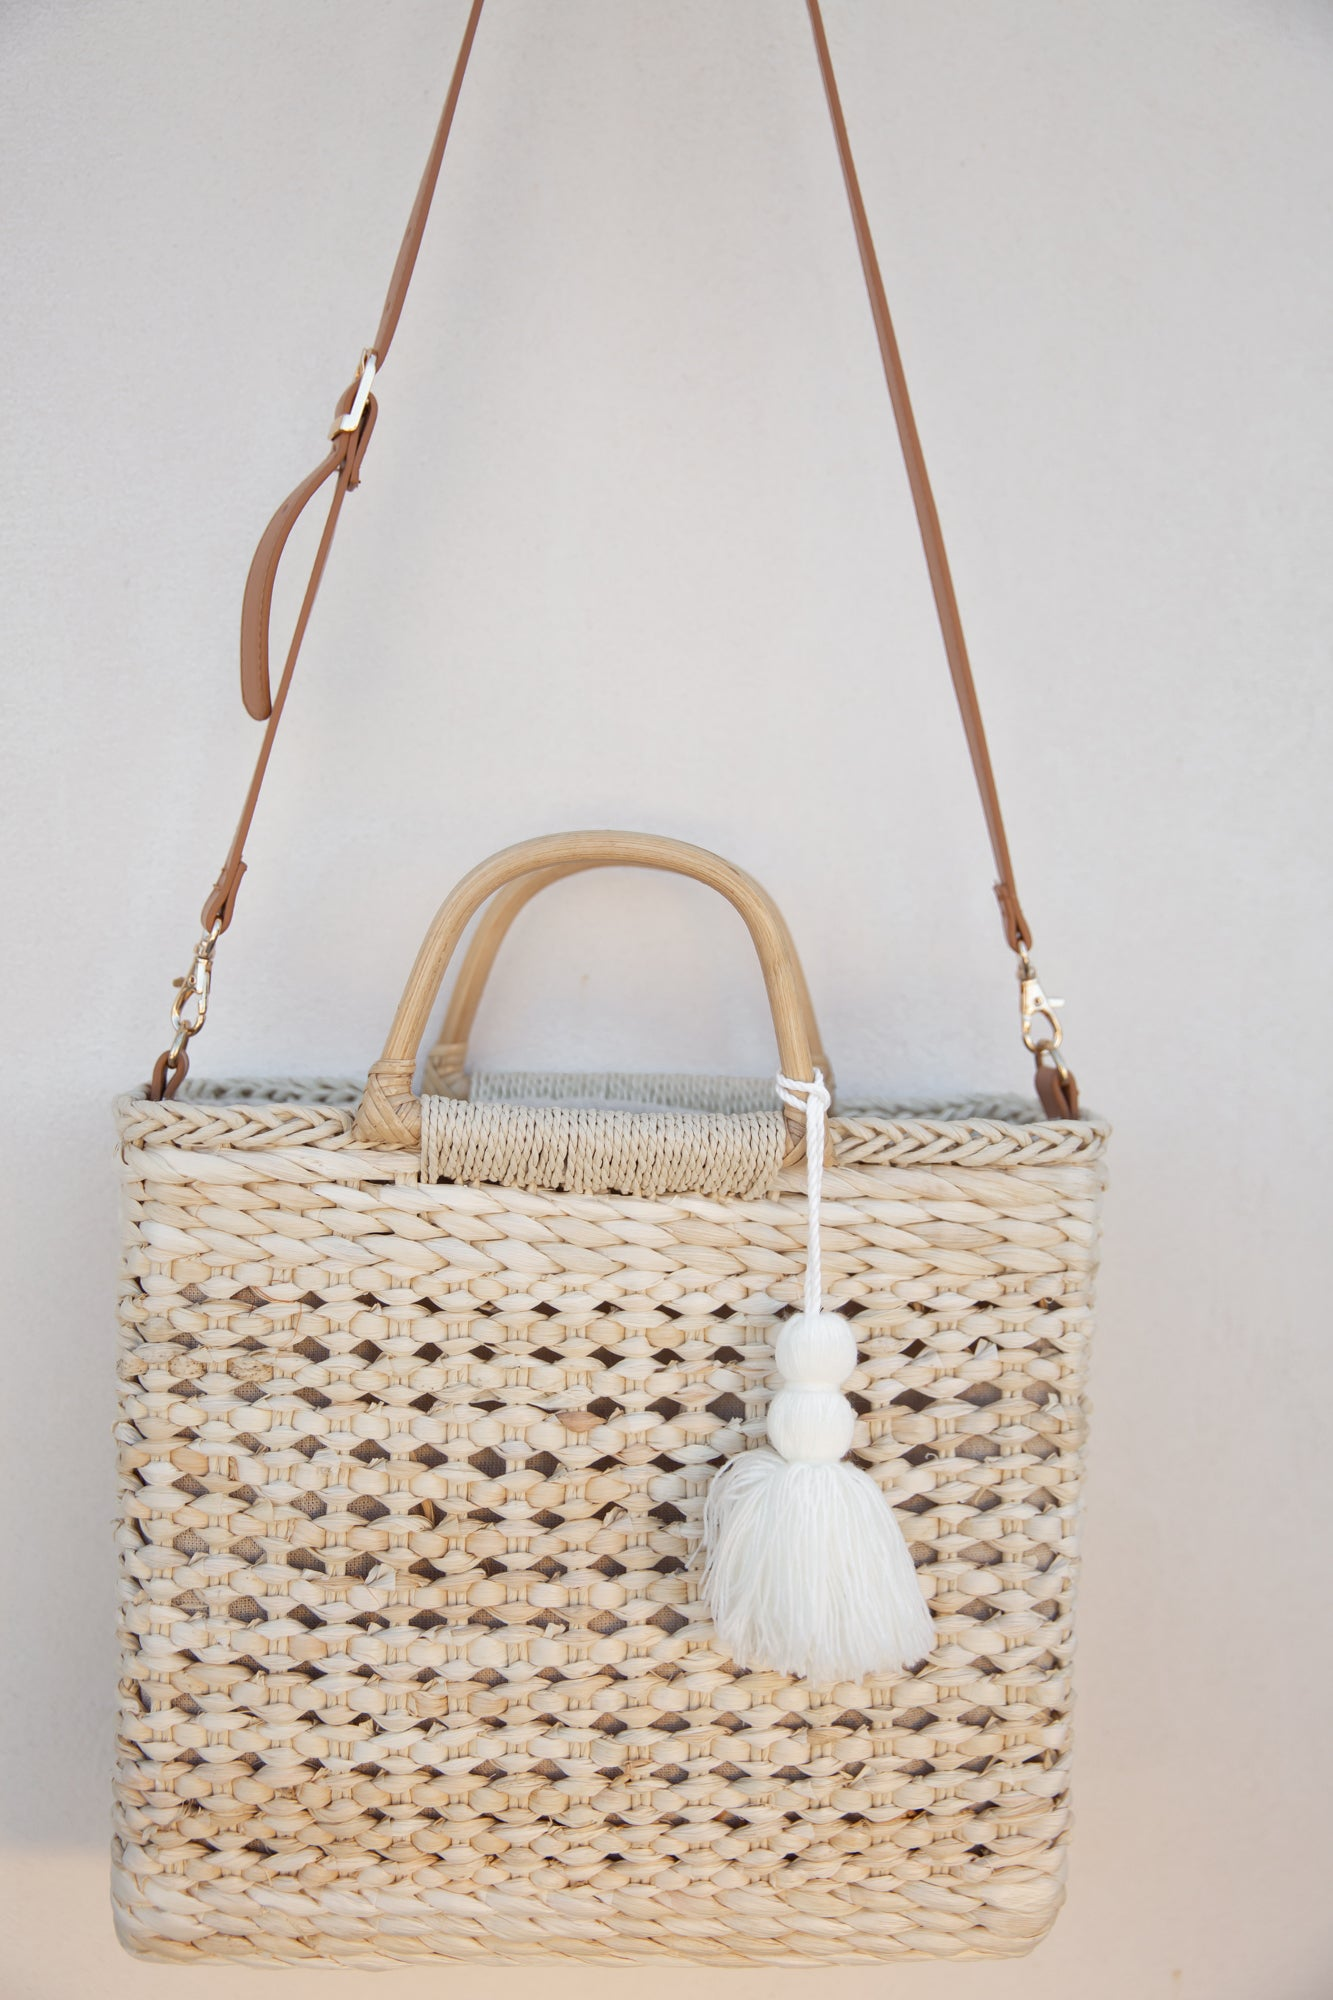 At The Beach Tassel Woven Tote